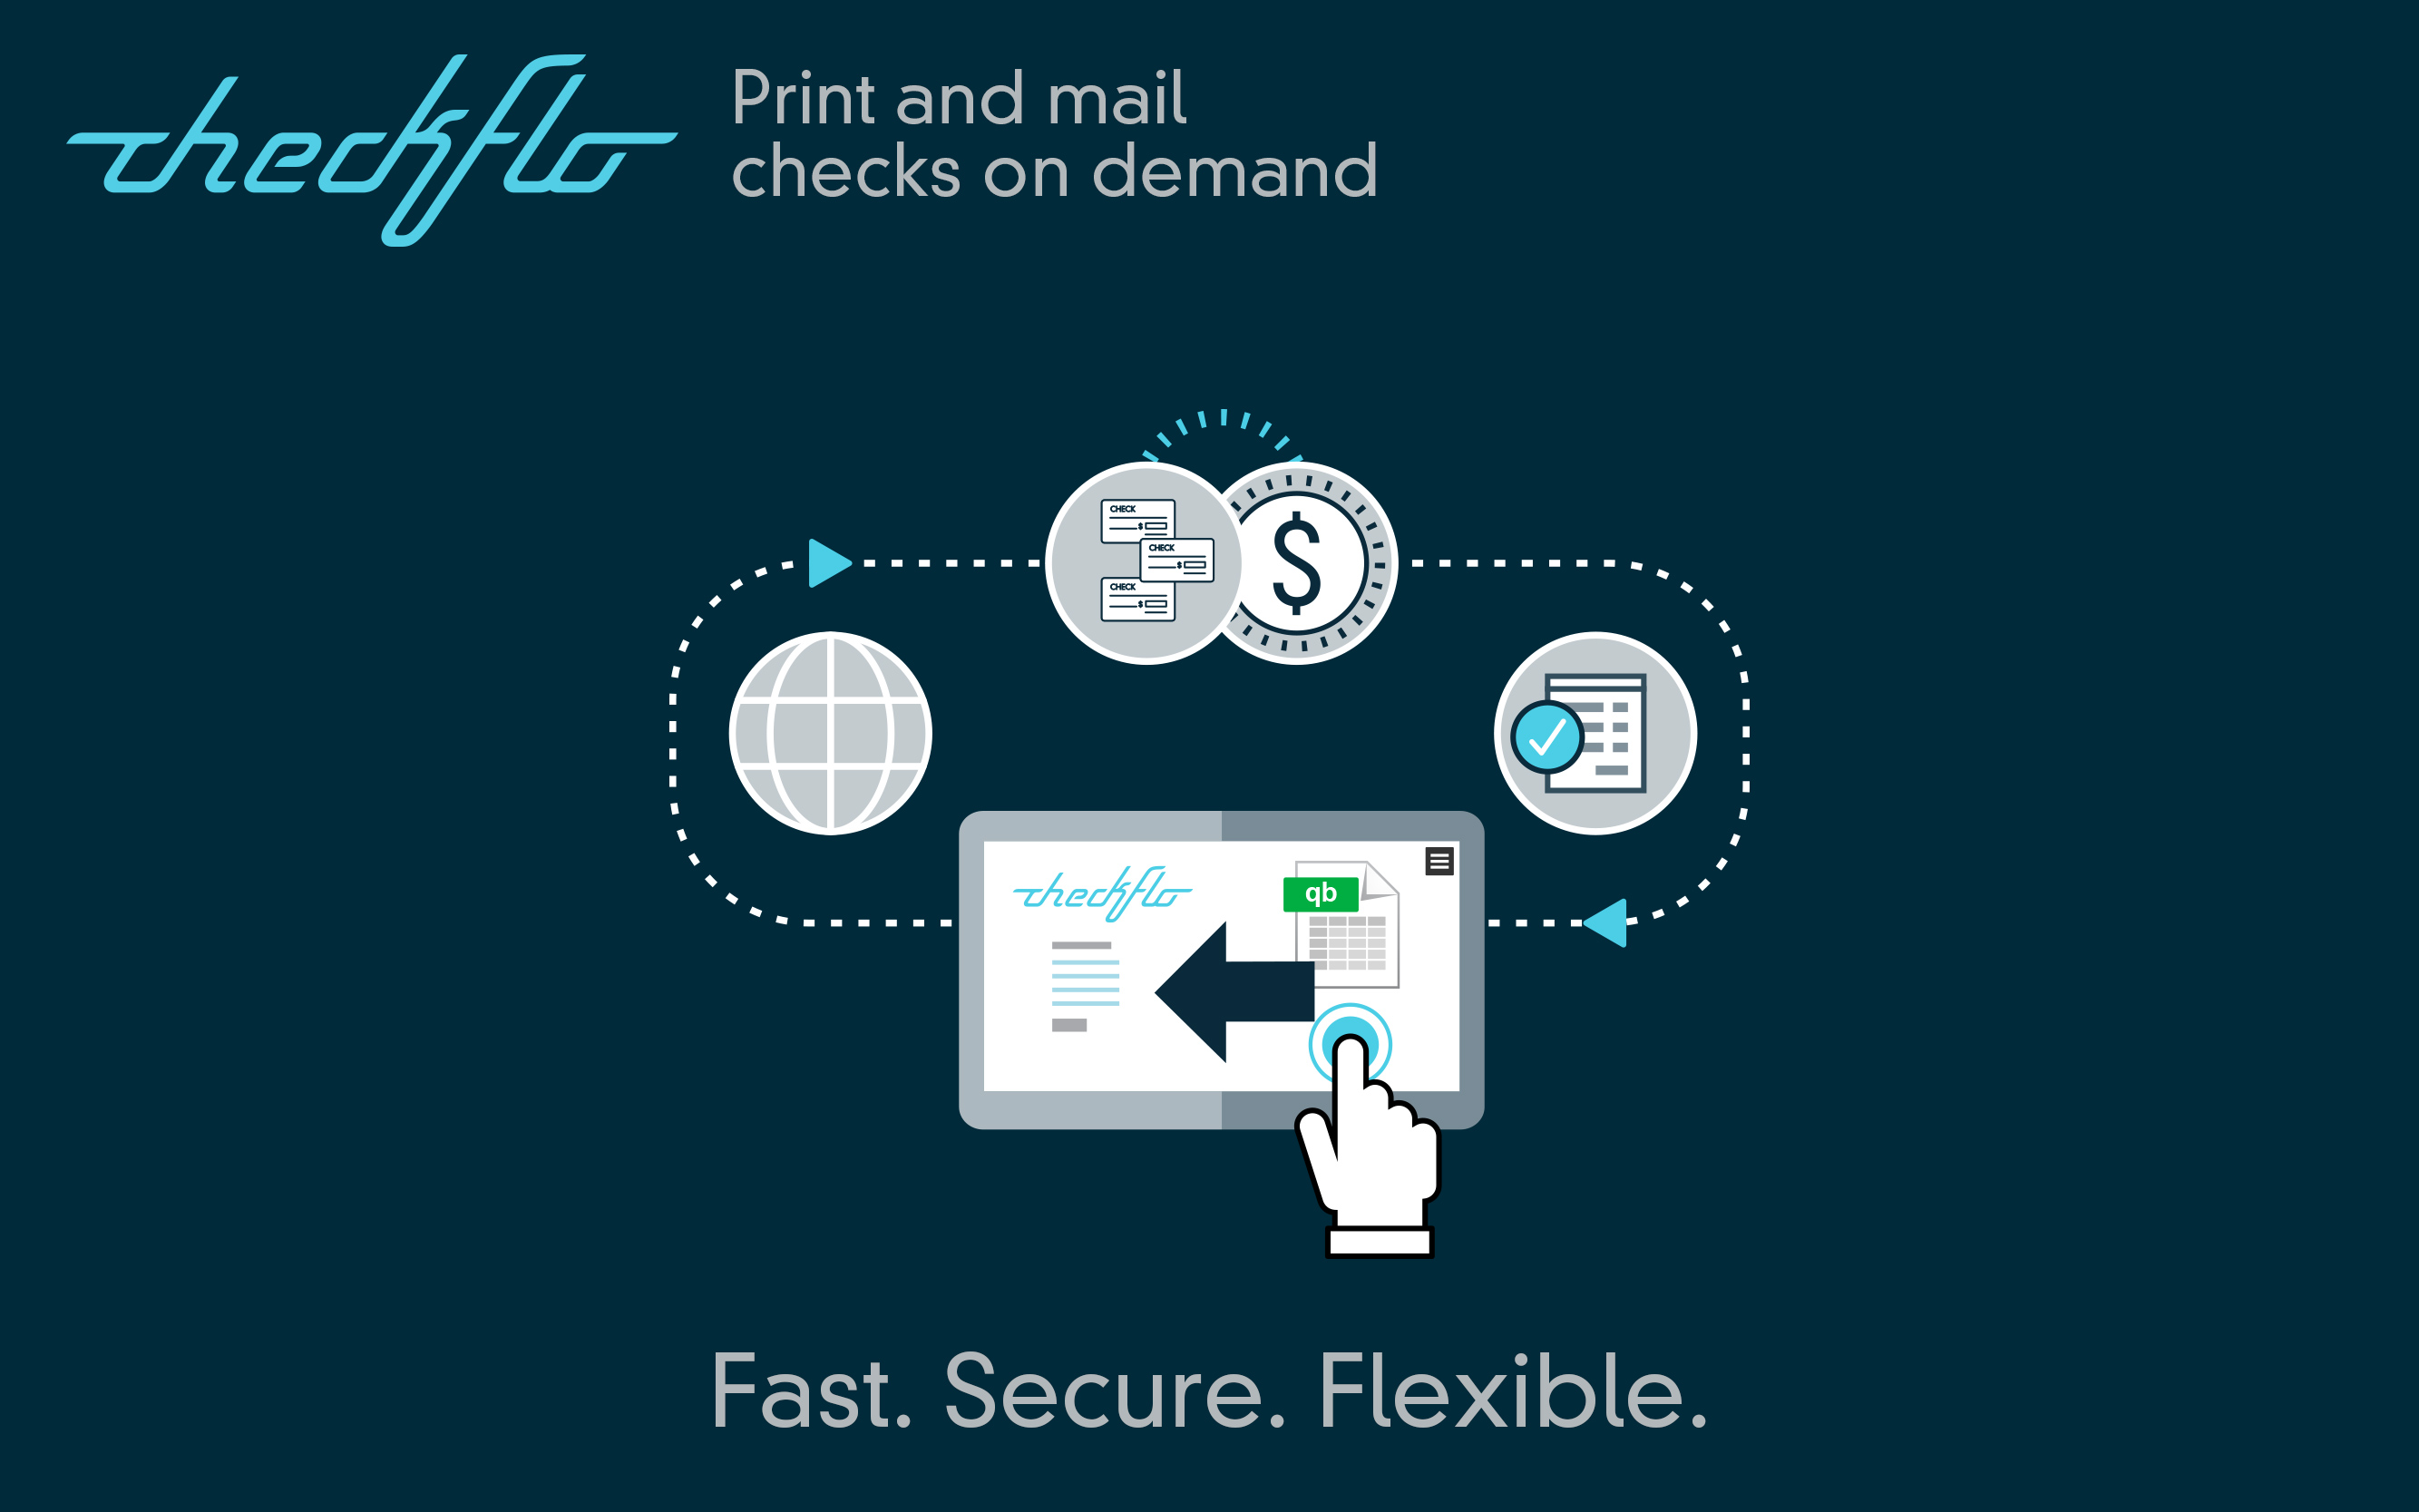 Print and Mail Checks on demand